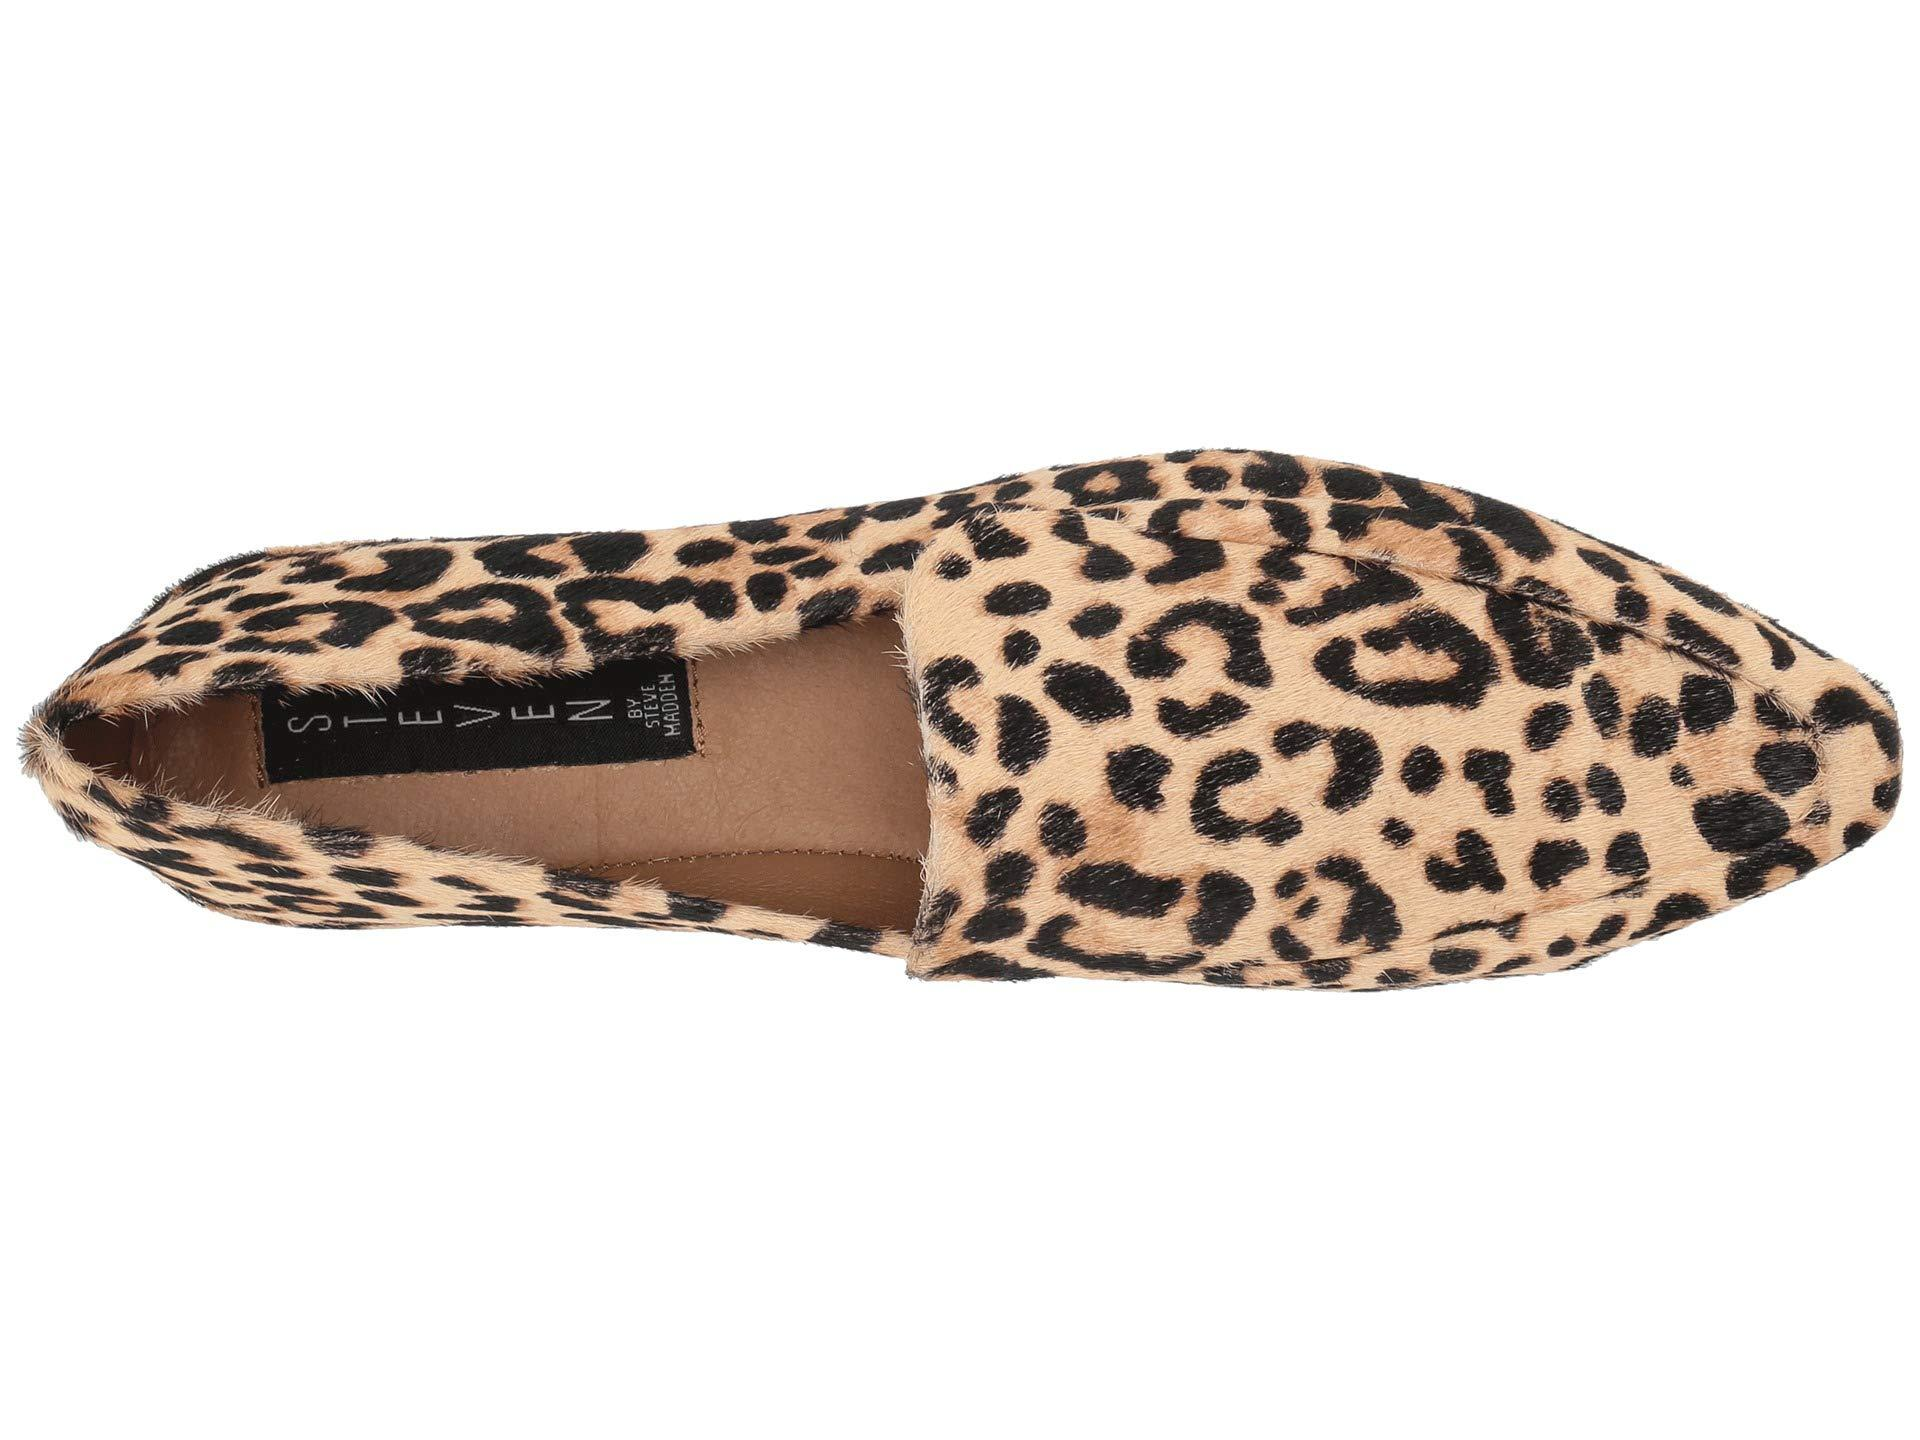 f9ed6d866a7 Steven by Steve Madden - Brown Haylie-l Flat (leopard) Women s Shoes -.  View fullscreen